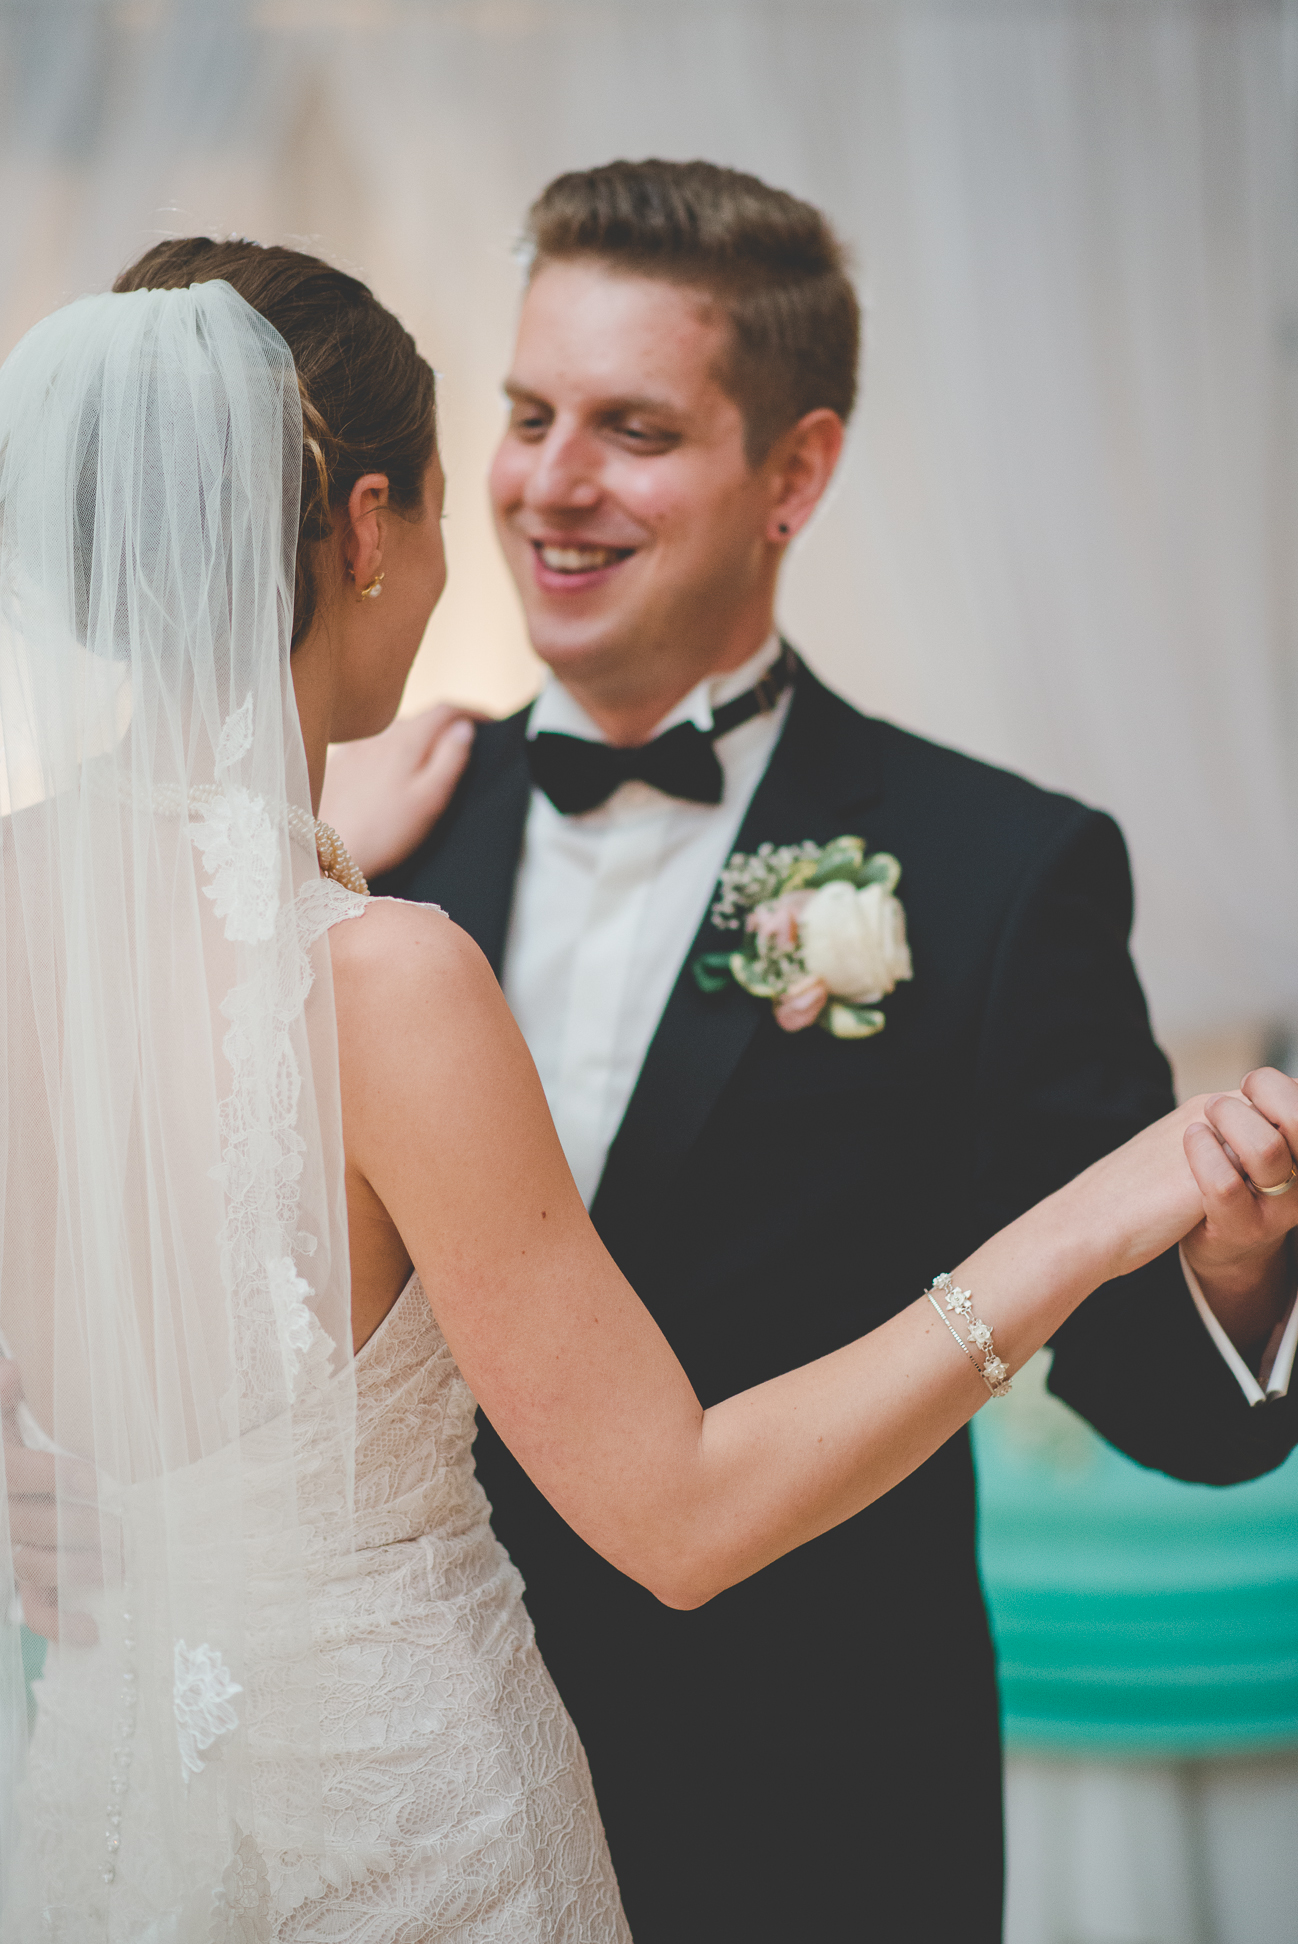 groom smiles at bride in lace wedding dress and veil during first dance as husband and wife